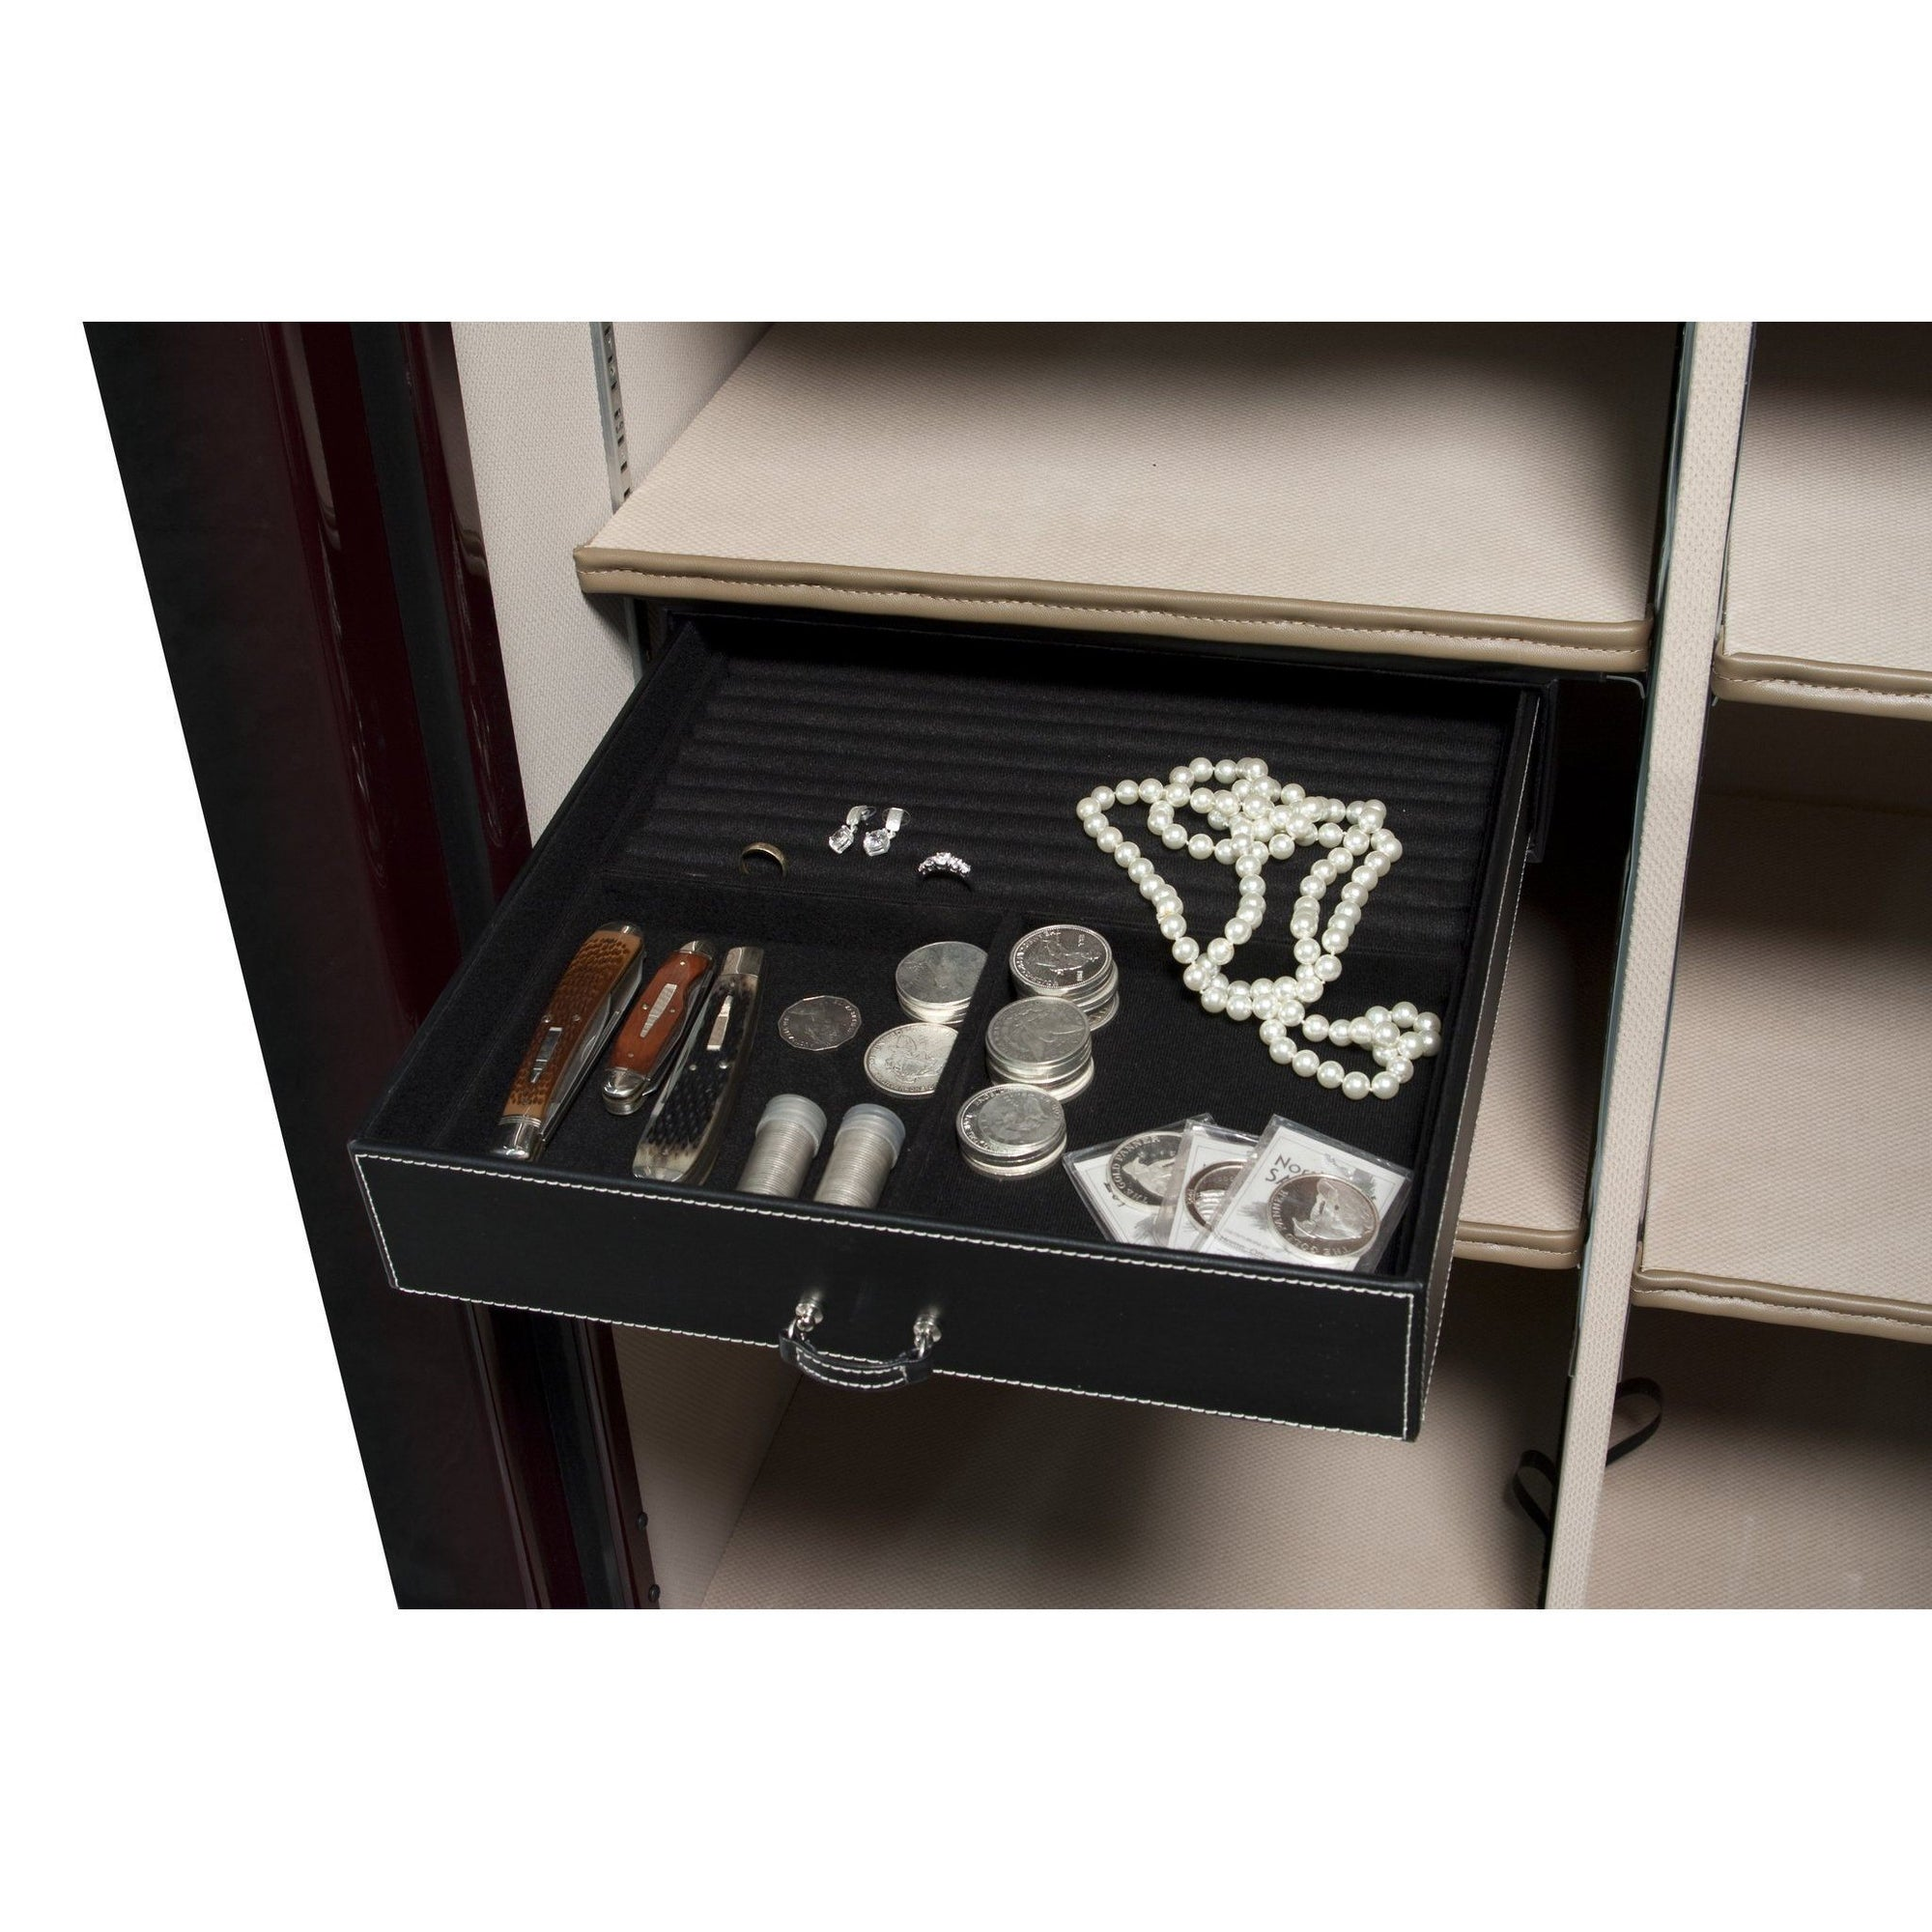 Liberty Safe-accessory-storage-jewelry-drawer-15-inch-under-shelf-mount-50-size-safes